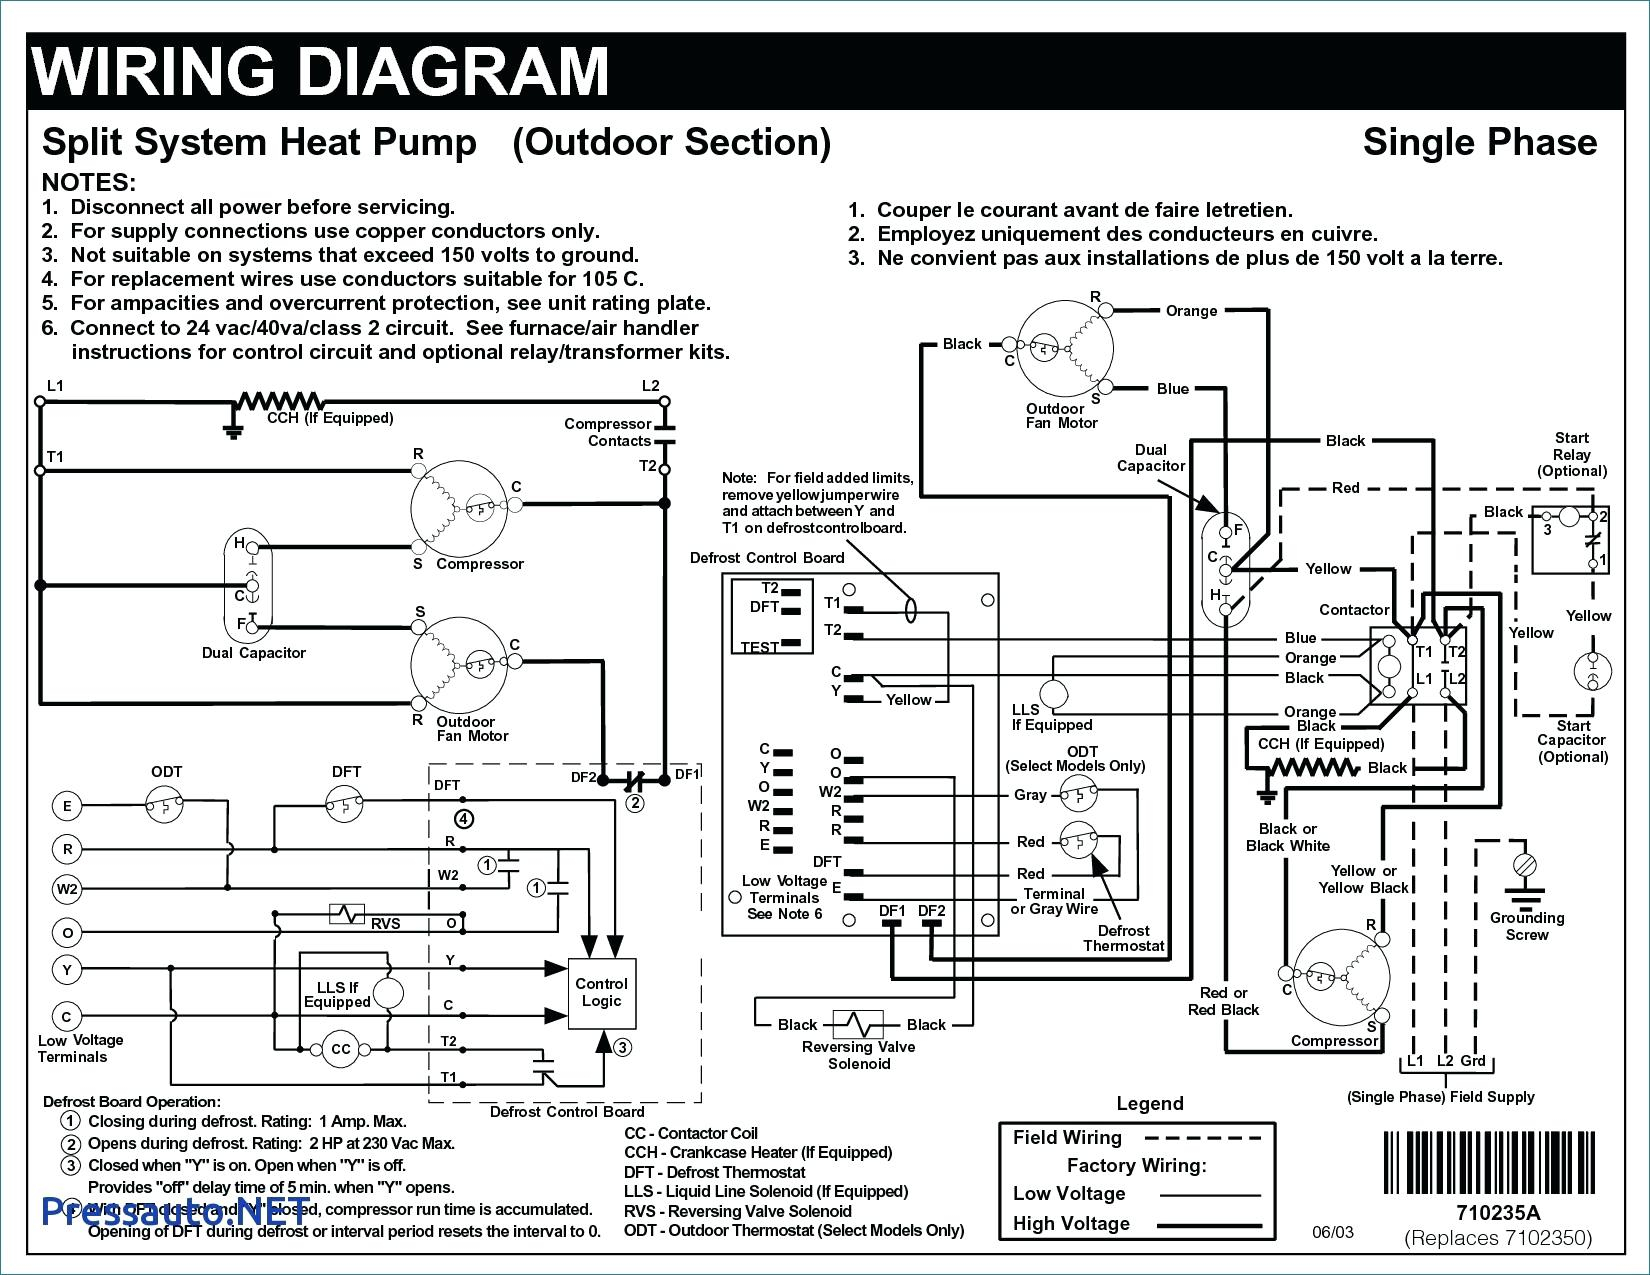 Collection Of Munro Pump Wiring Diagram Sample on